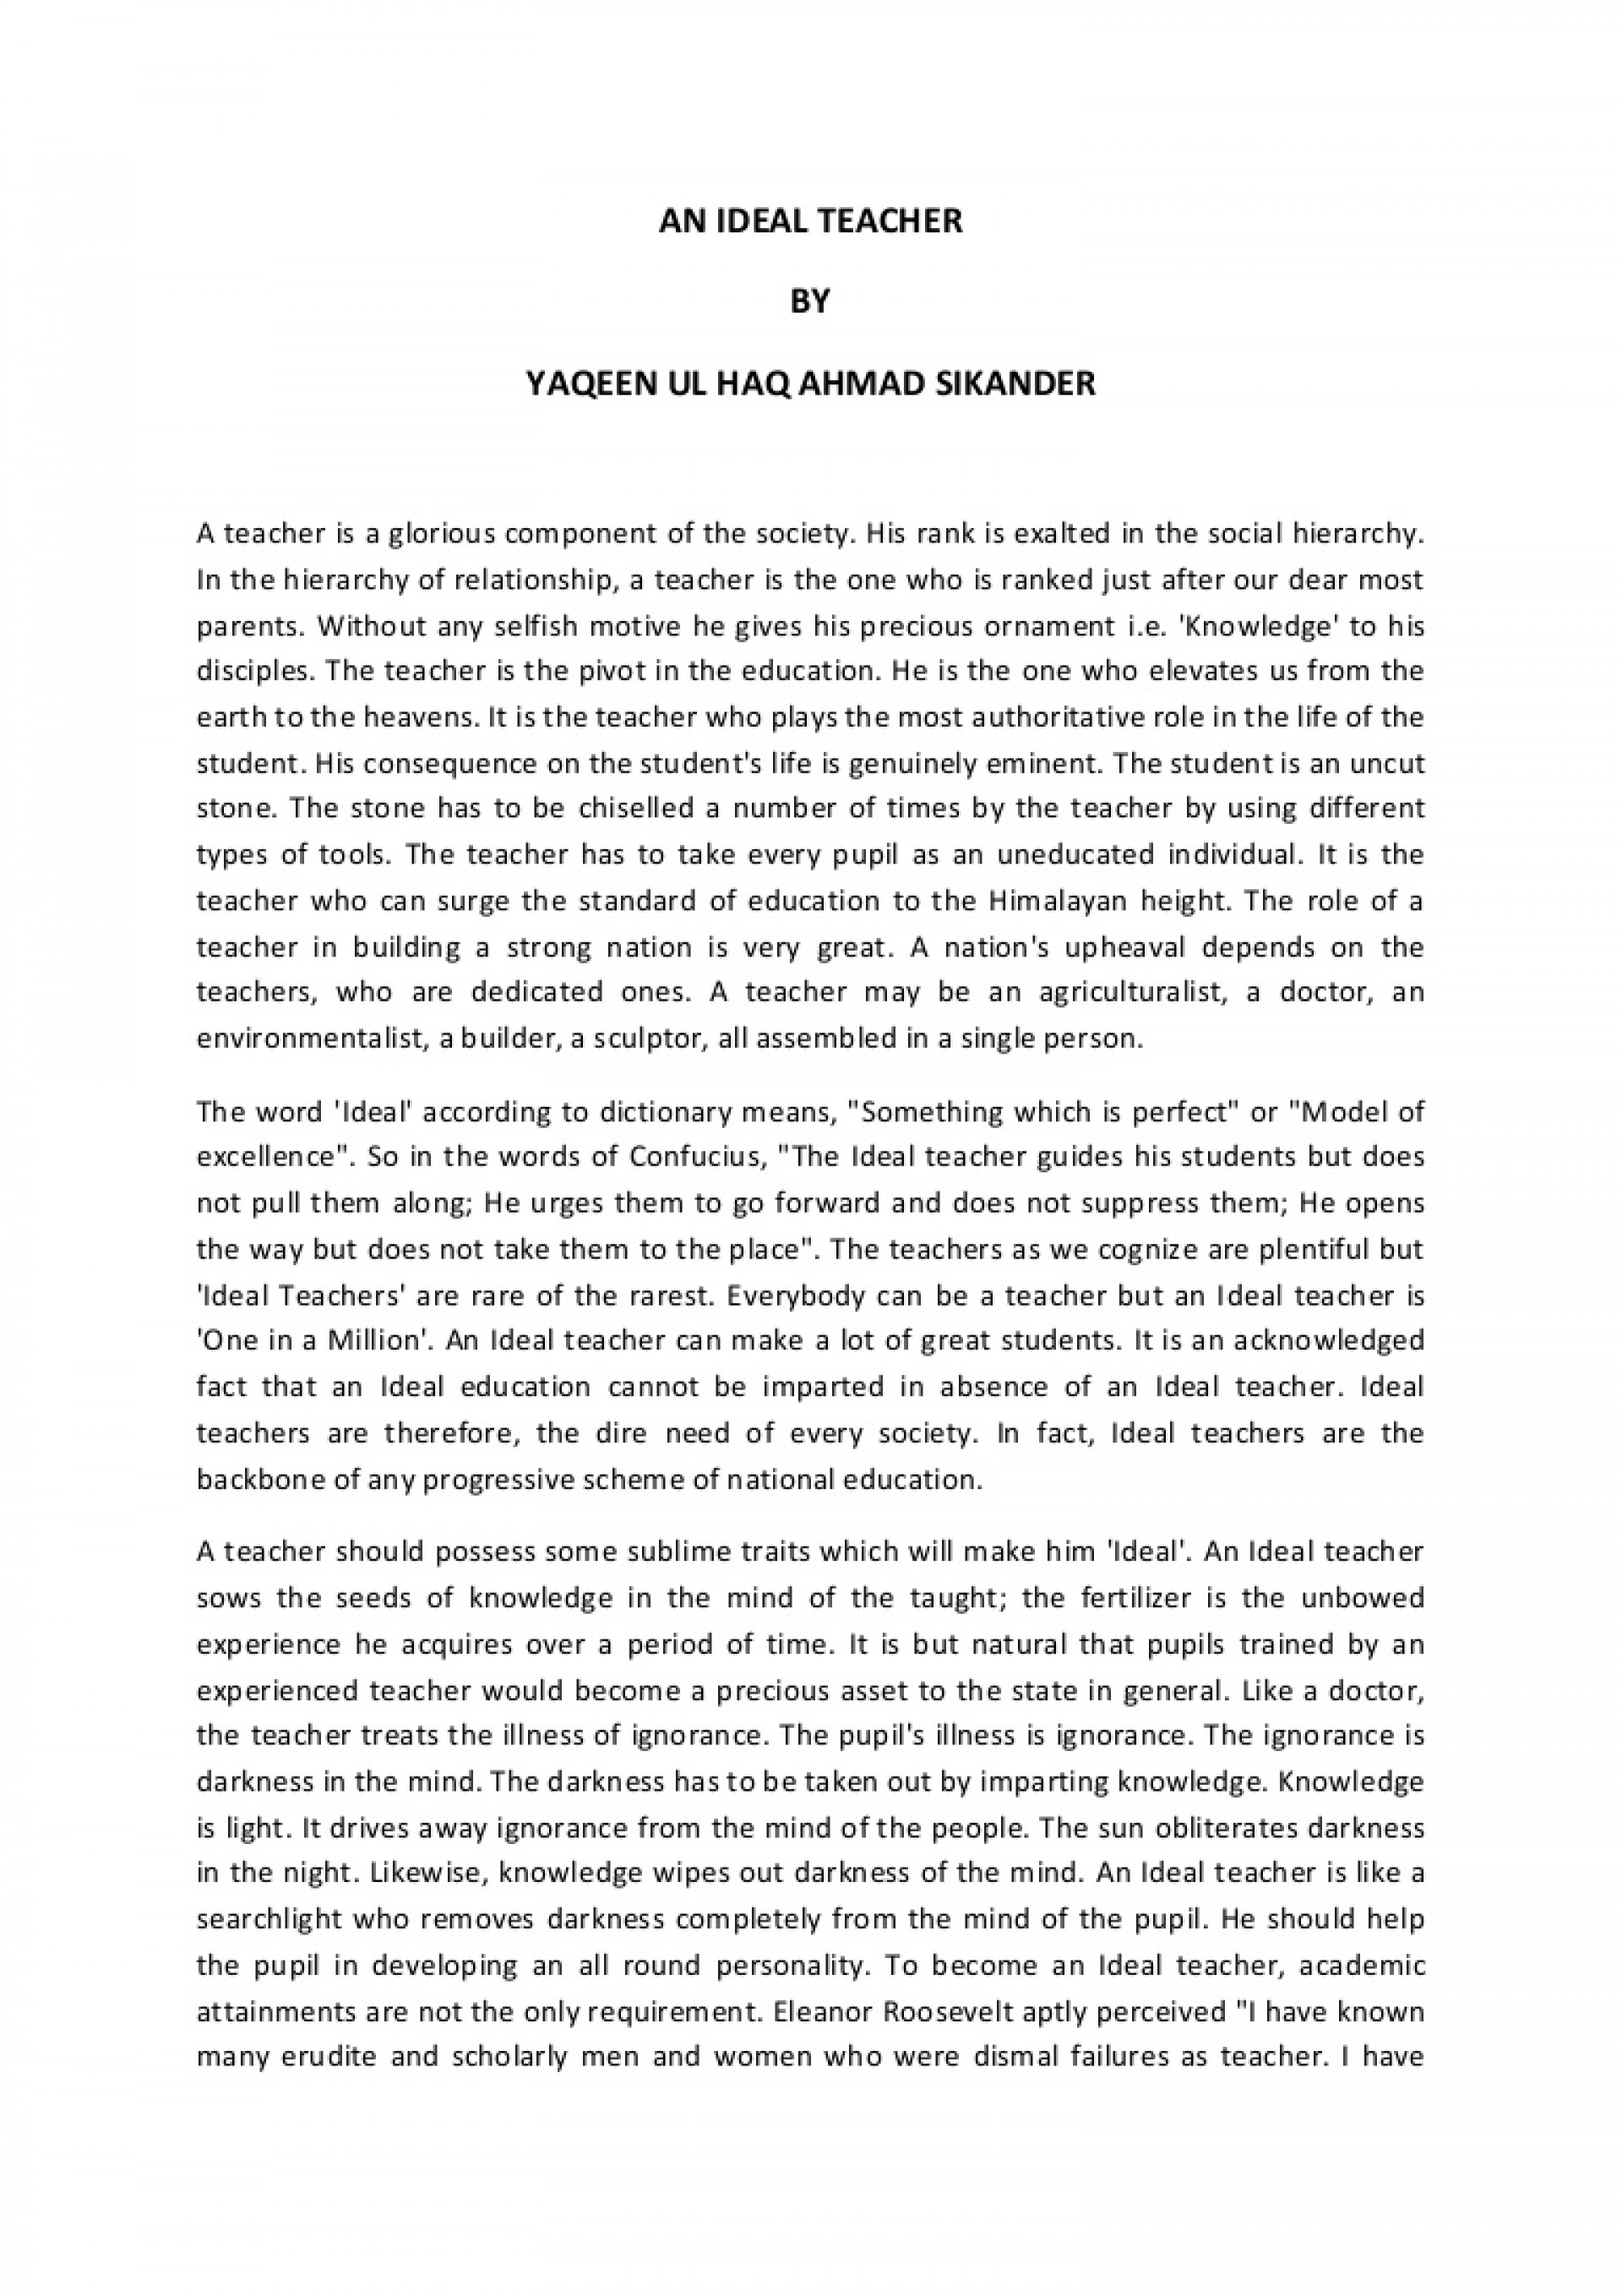 014 Why Do You Want To Teacher Essay Anidealteacher Phpapp02 Thumbnail Impressive Be A Pdf Would Become 1920